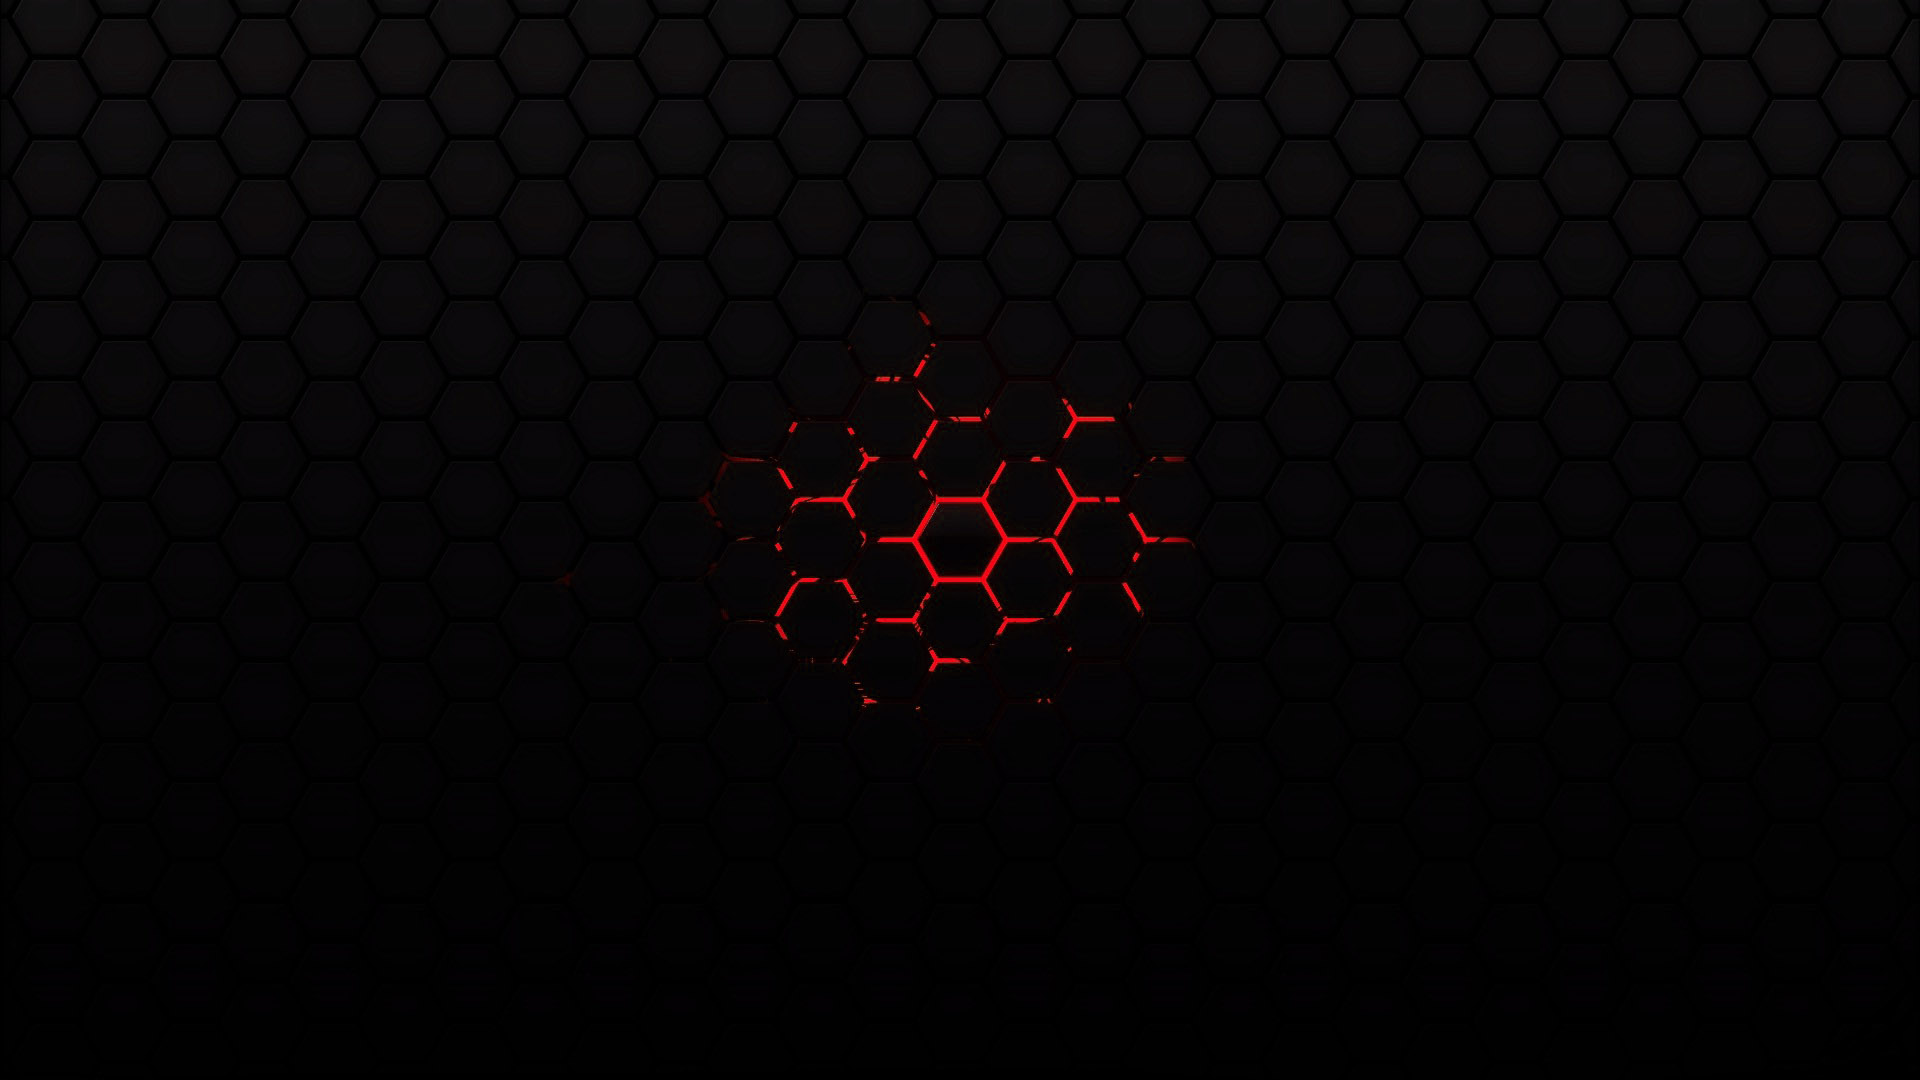 Hd wallpaper red and black - Black Red Wallpaper 1920x1080 Black Red Black Background